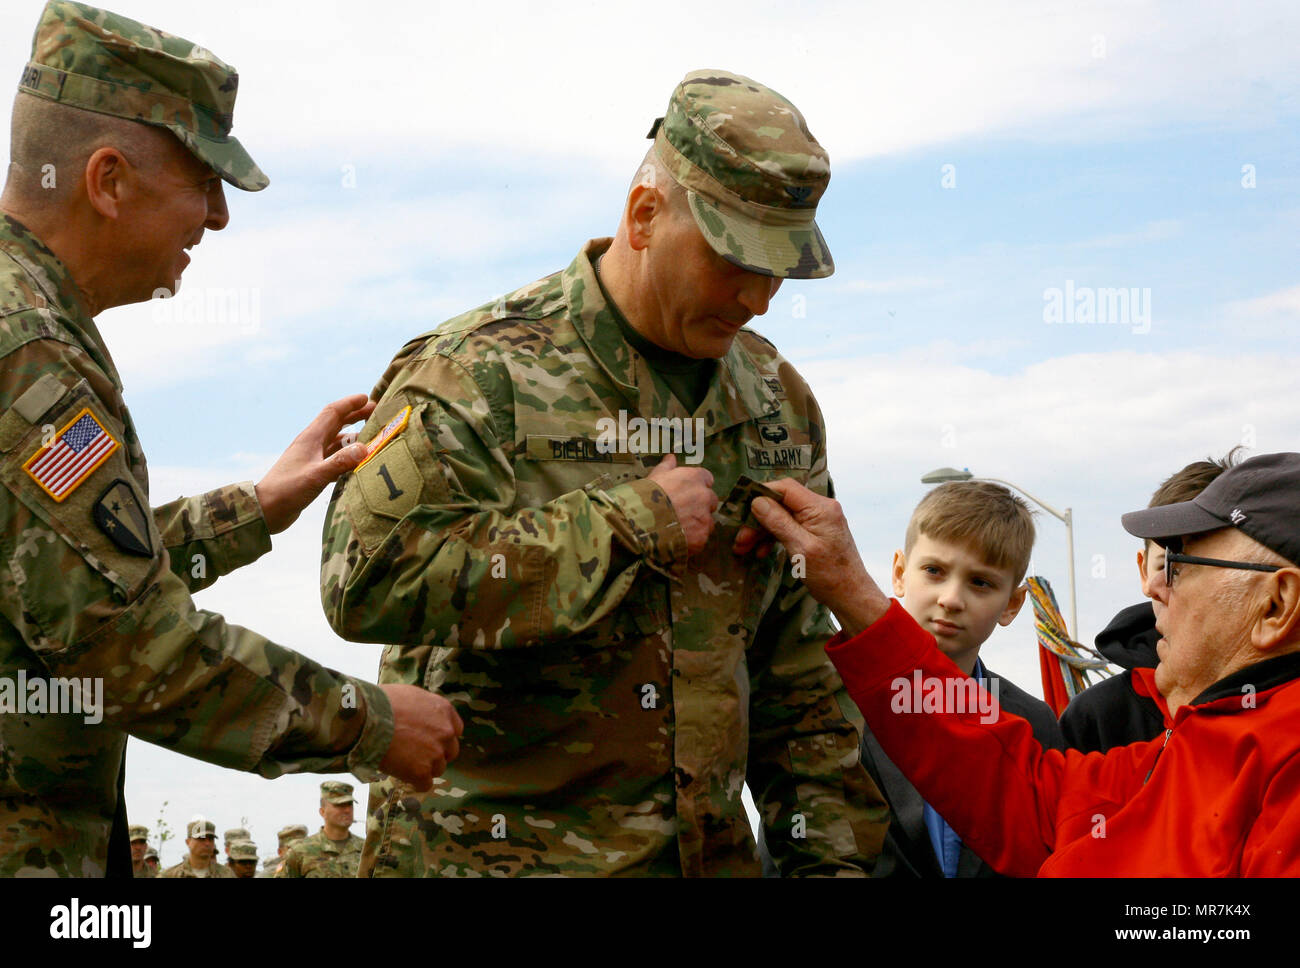 New York Army National Guard Brig. Gen. Joseph Biehler, the outgoing 27th Infantry Brigade Combat Team commander receives his new rank insignia from his father, John Biehler while being promoted to the rank of brigadier general during a change-of-command ceremony at Fort Drum, N.Y. , May 21 2017. Following his tenure with the 27th IBCT, Biehler will serve as the 42nd Infantry Division's executive officer. (U.S. Army National Guard photo by Sgt. Alexander Rector) Stock Photo